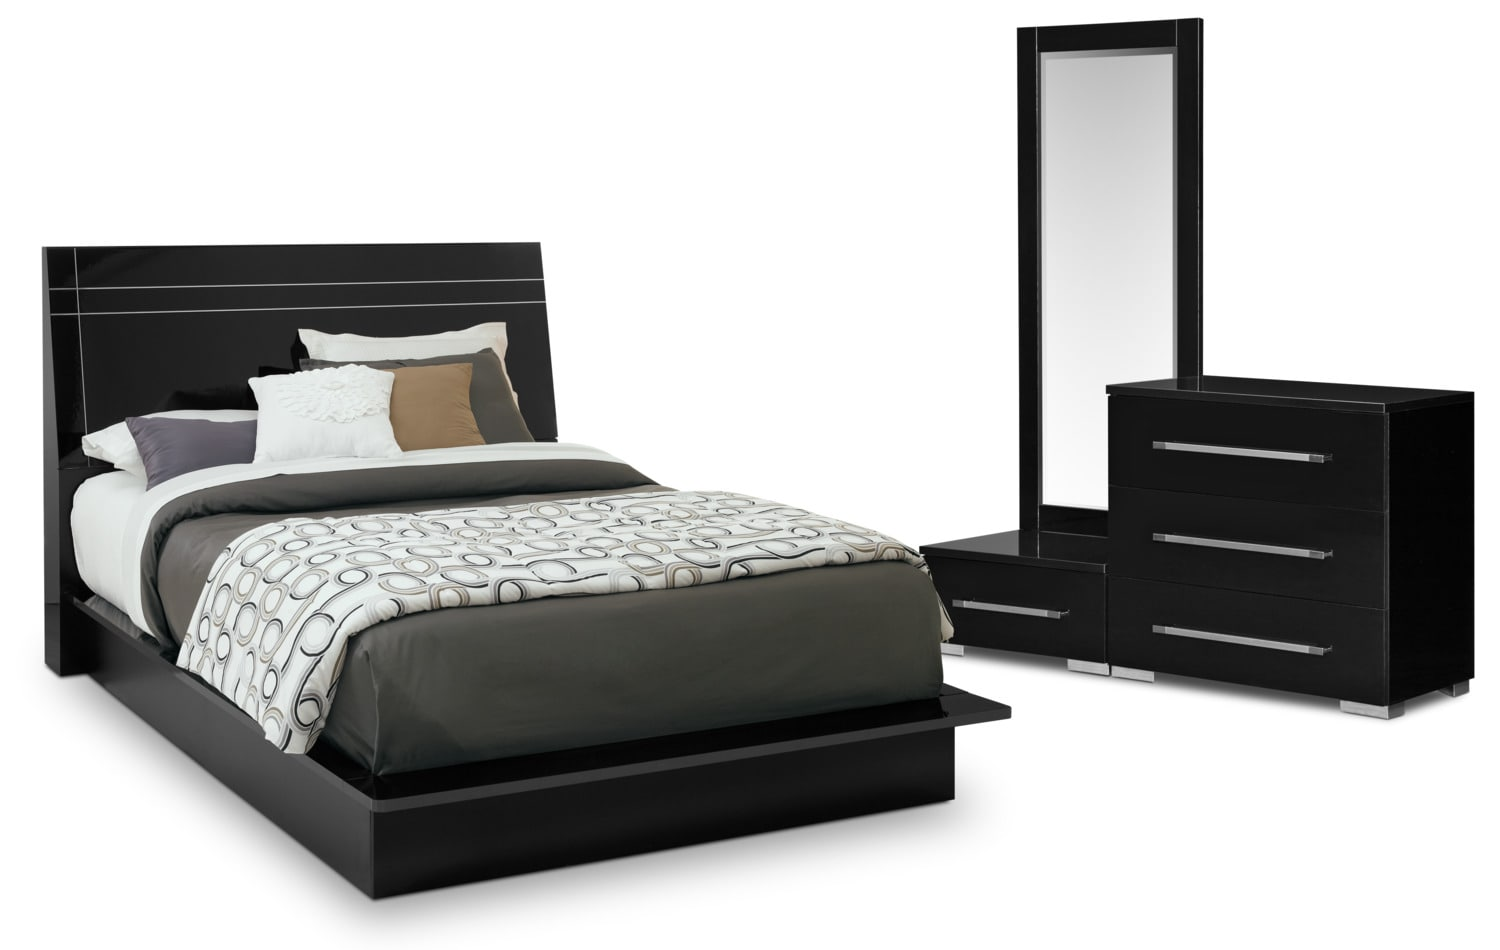 Bedroom Furniture   Dimora 5 Piece Queen Panel Bedroom Set   Black